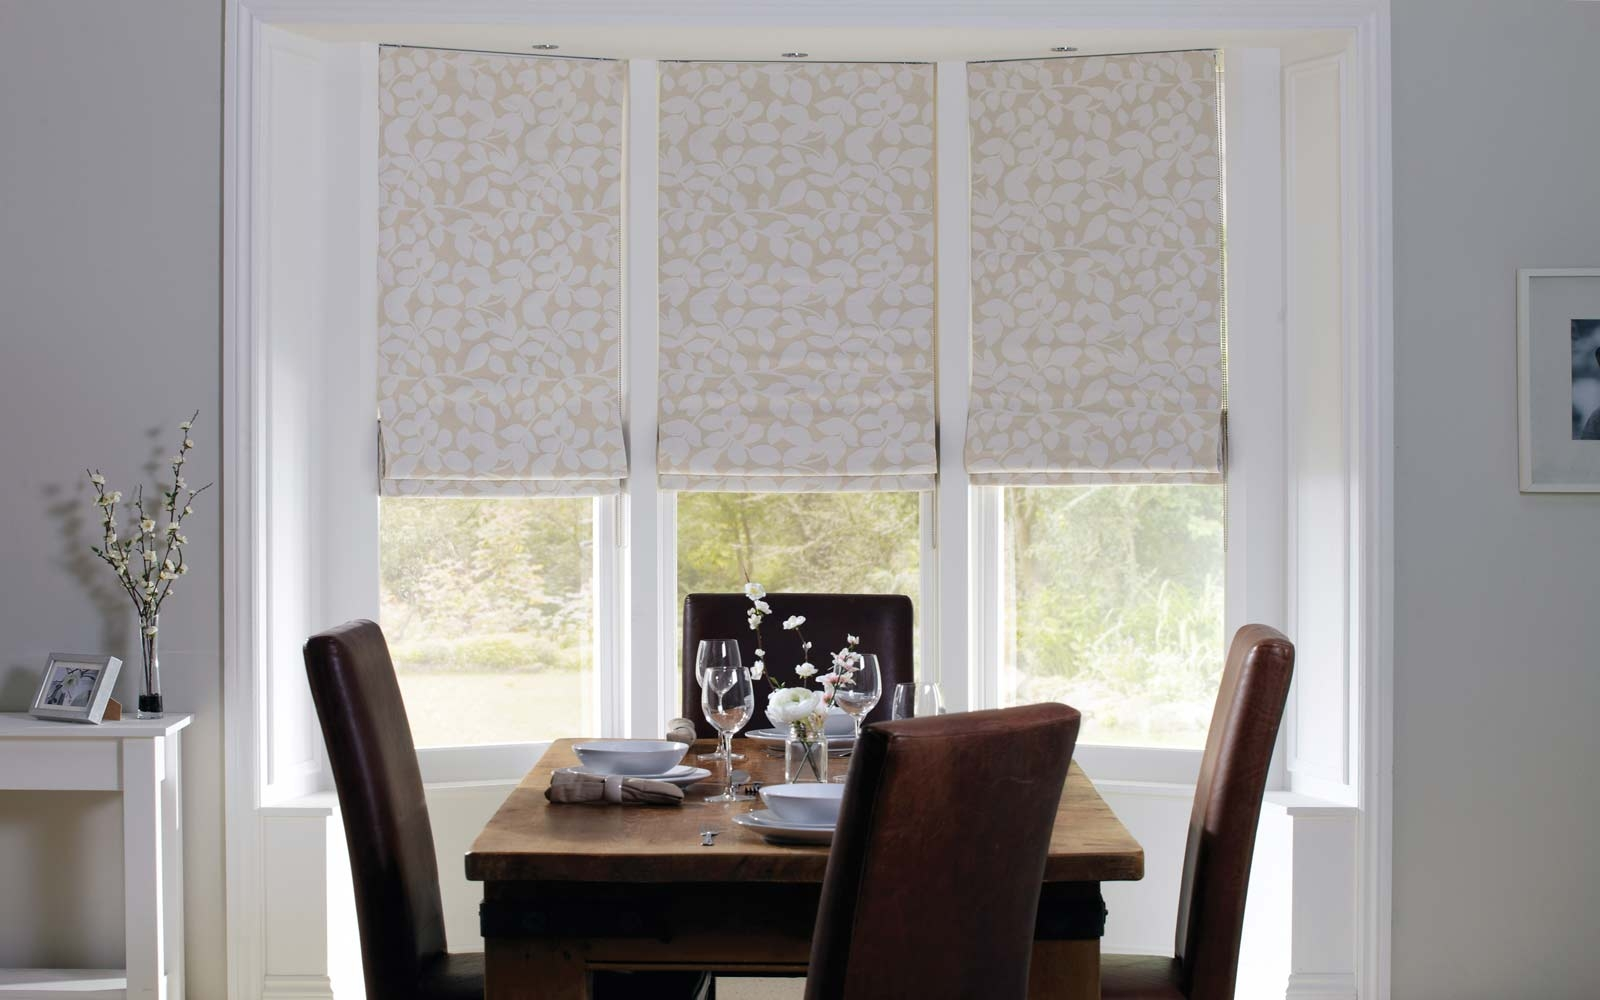 Roman Blinds Surrey Blinds Shutters Within Blackout Roman Blind (Image 13 of 15)